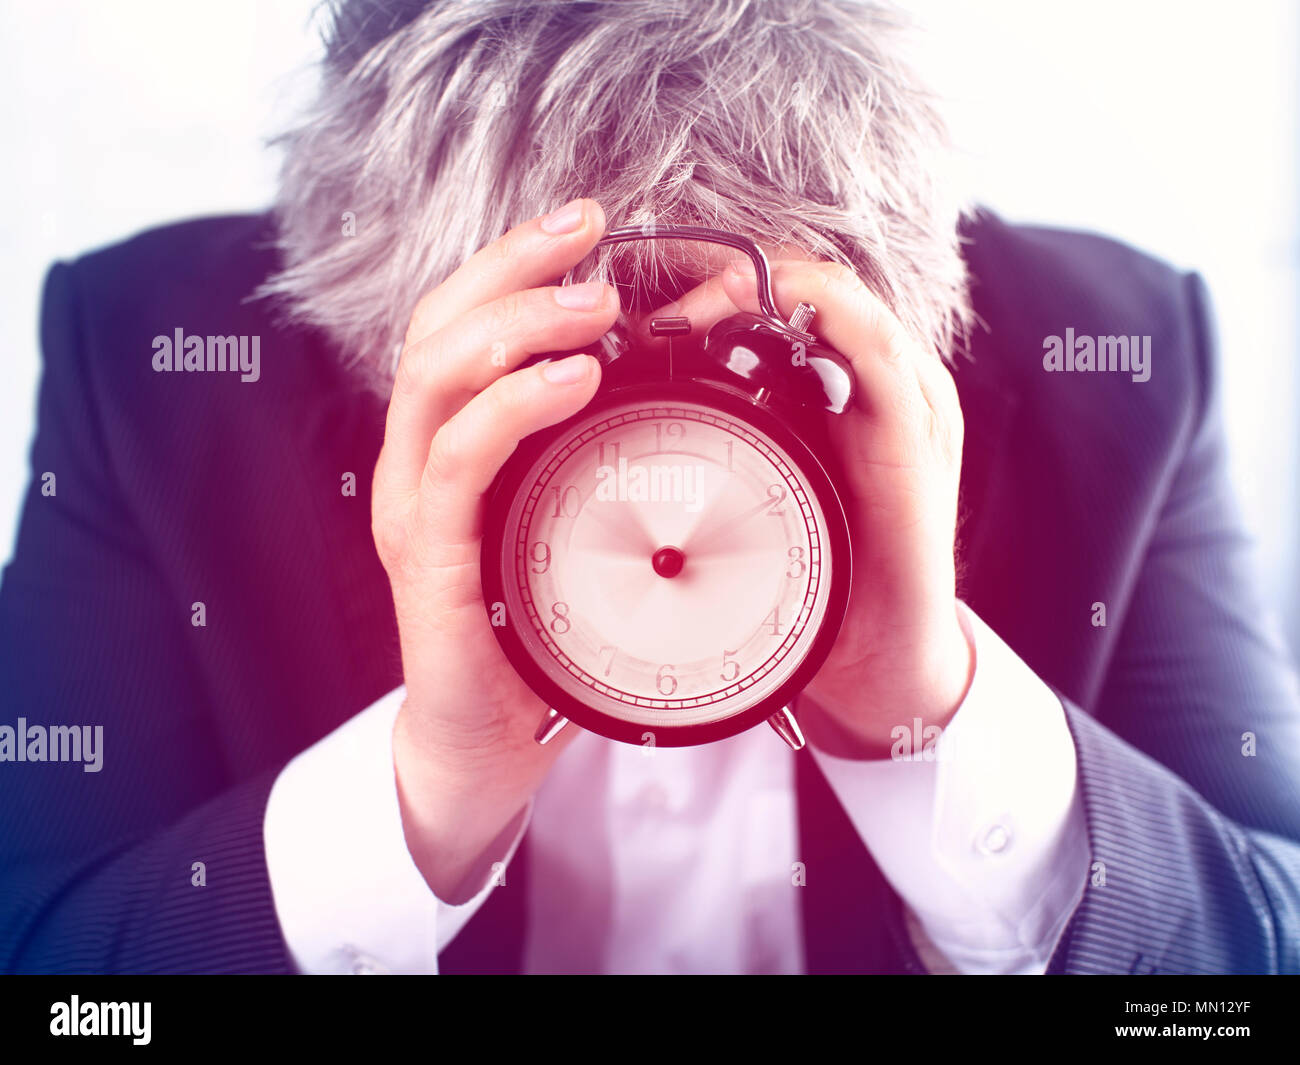 Man hiding face behind alarm clock on white background. Time management concept - Stock Image